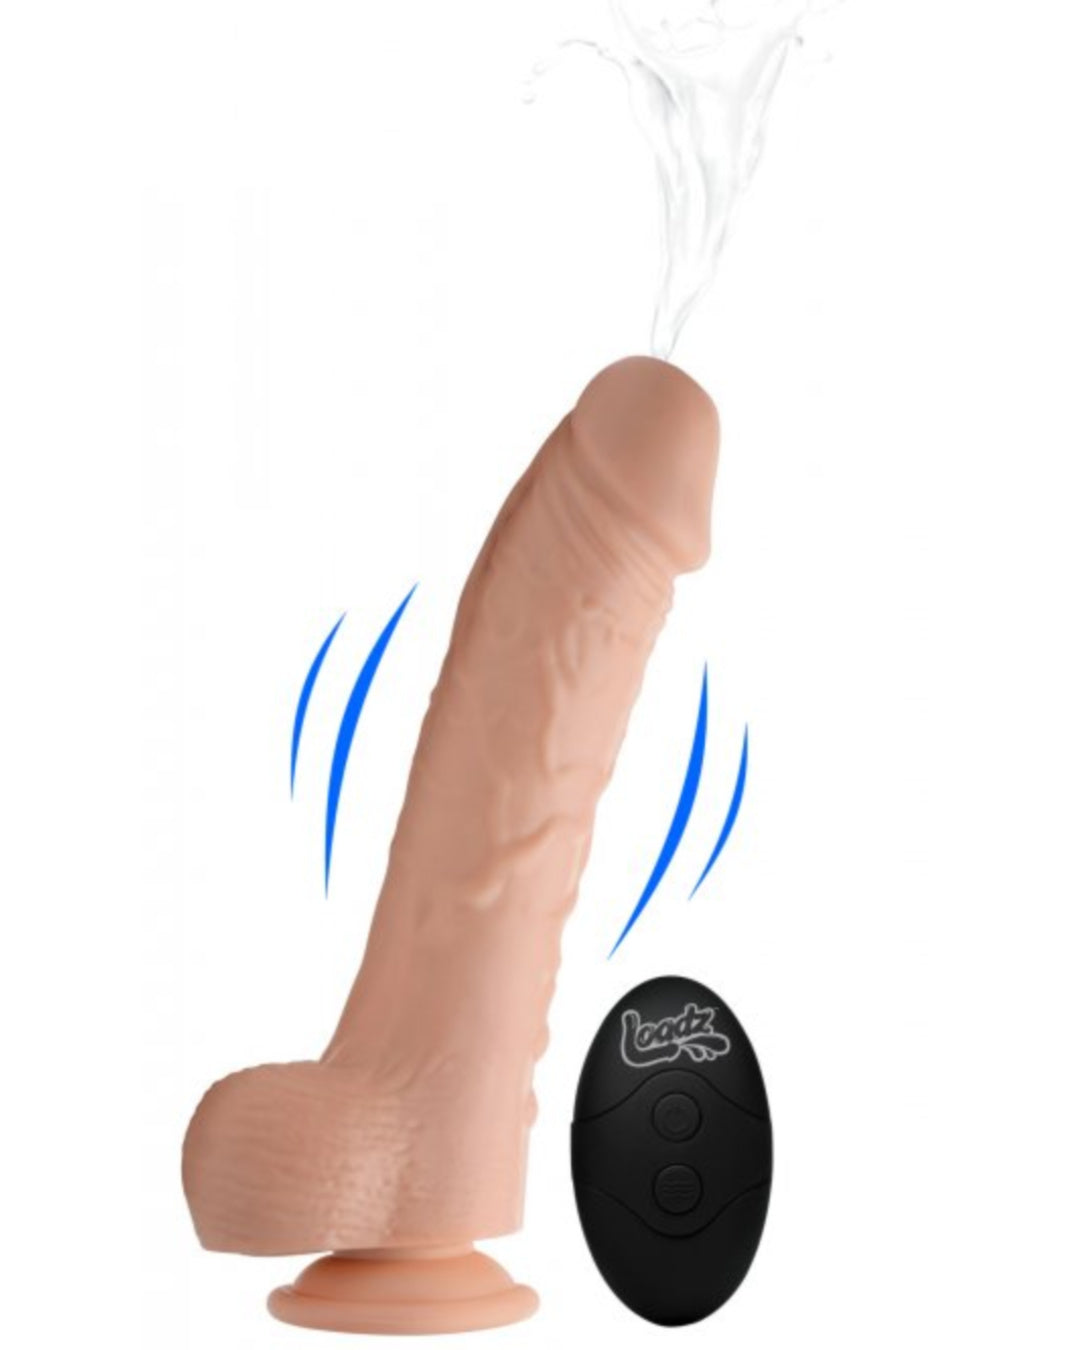 Loadz 7 Inch Vibrating Squirting Dildo with Wireless Remote Control - Vanilla showing the squirting and vibrating functions